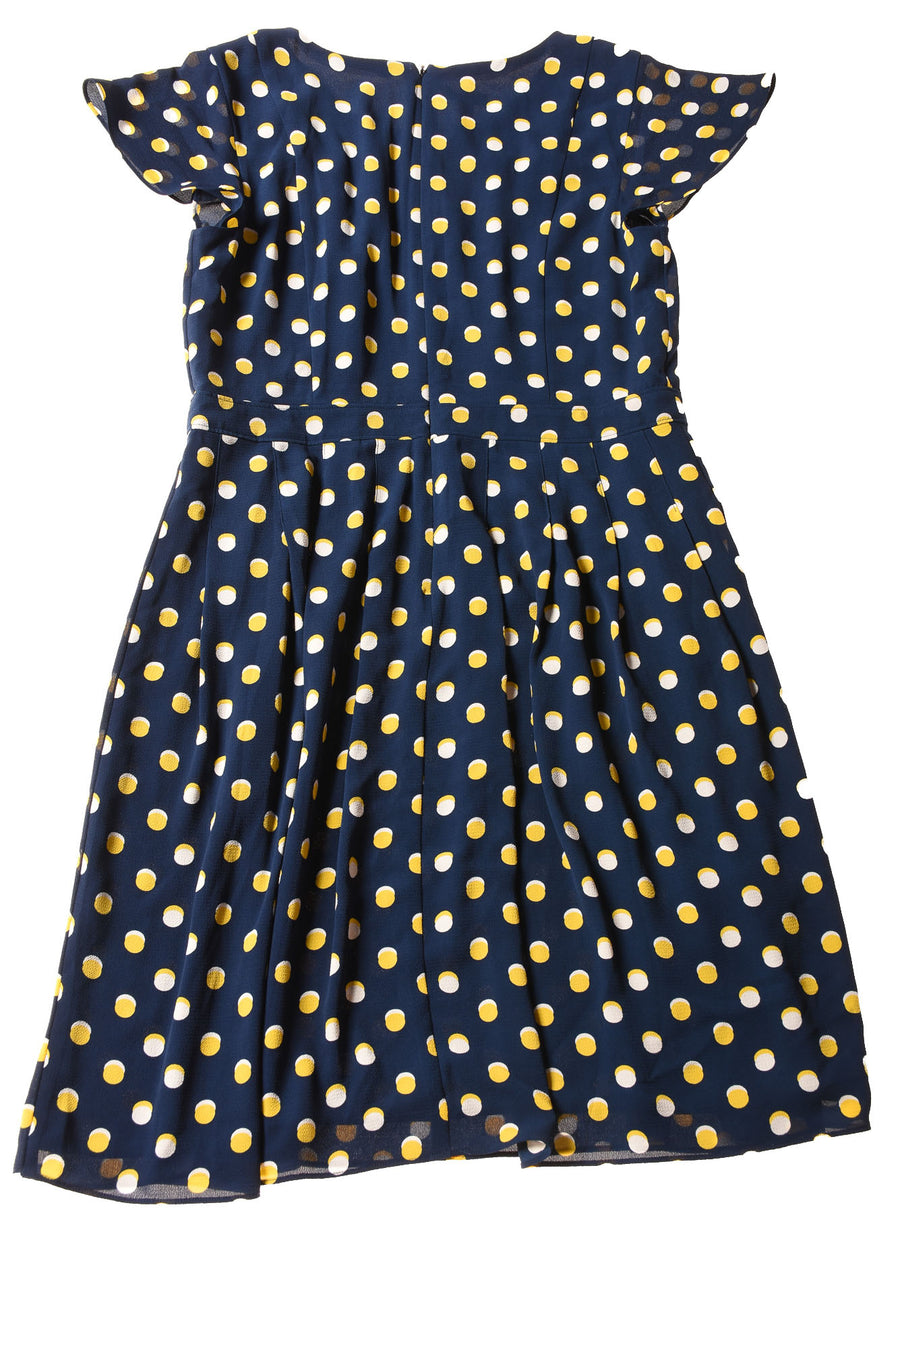 NEW Talbots Women's Petite Dress 12 Navy / Polka Dot